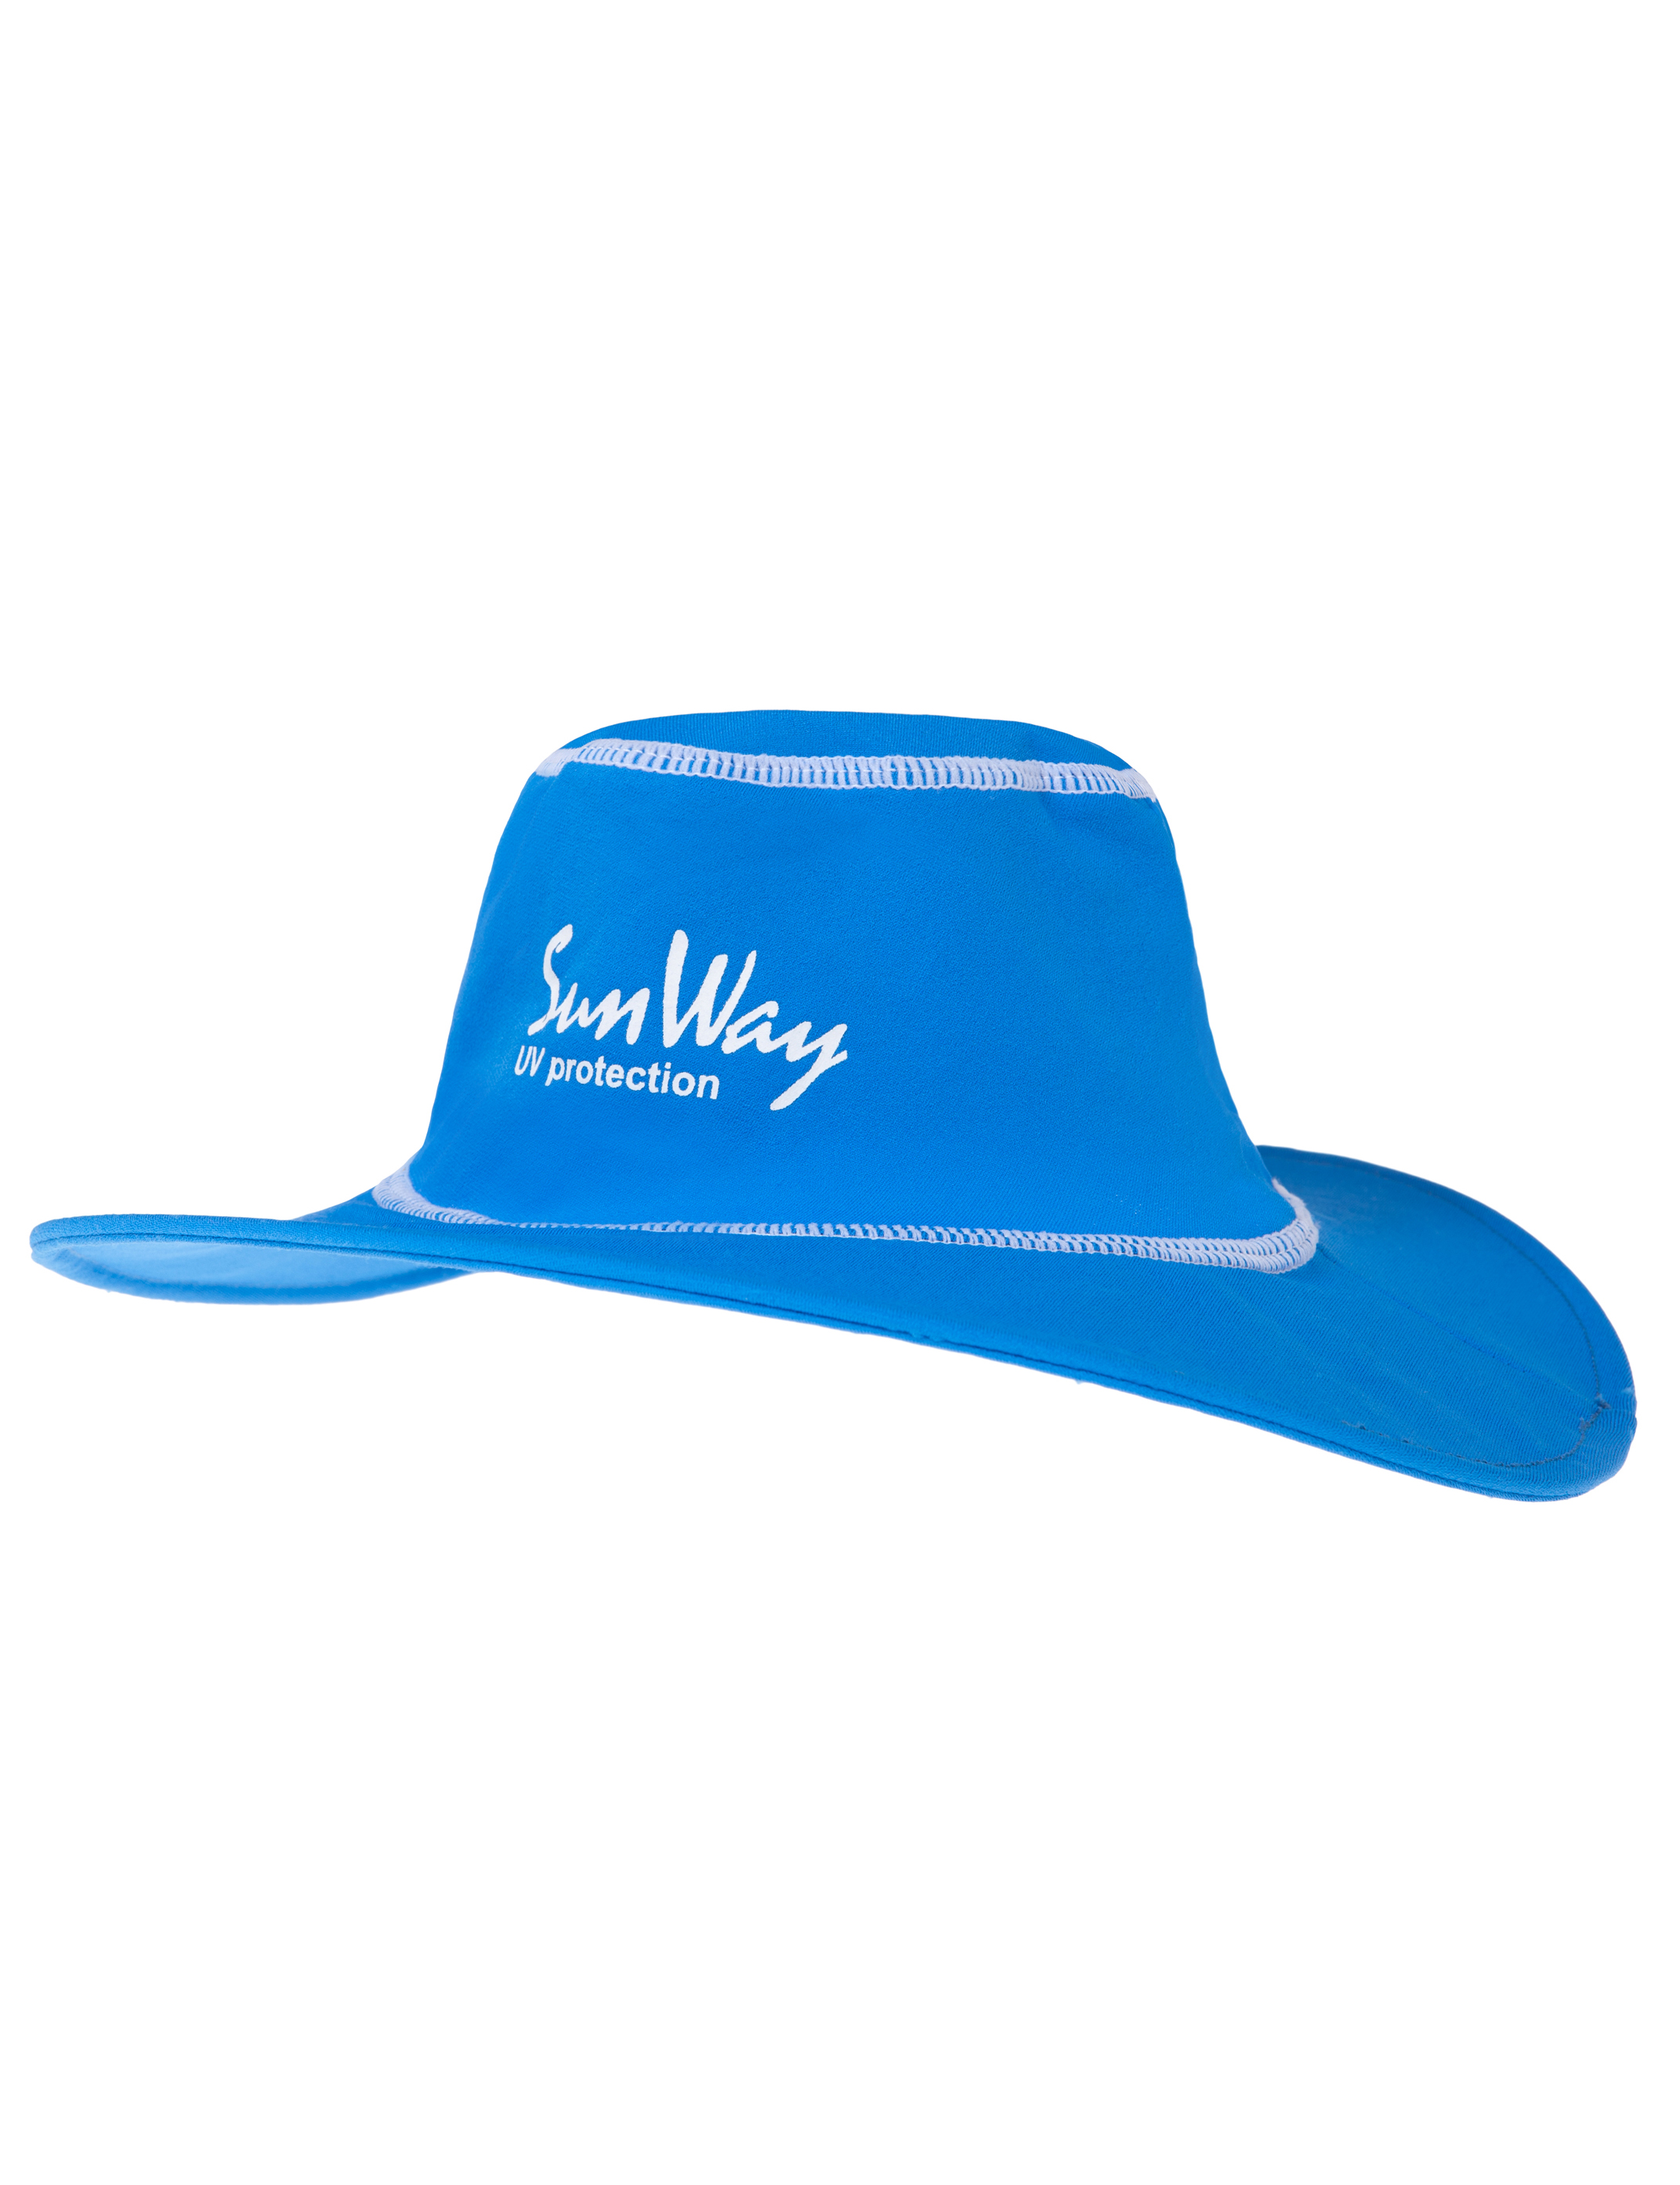 Babies and Toddlers Blue Wide Brim Hat